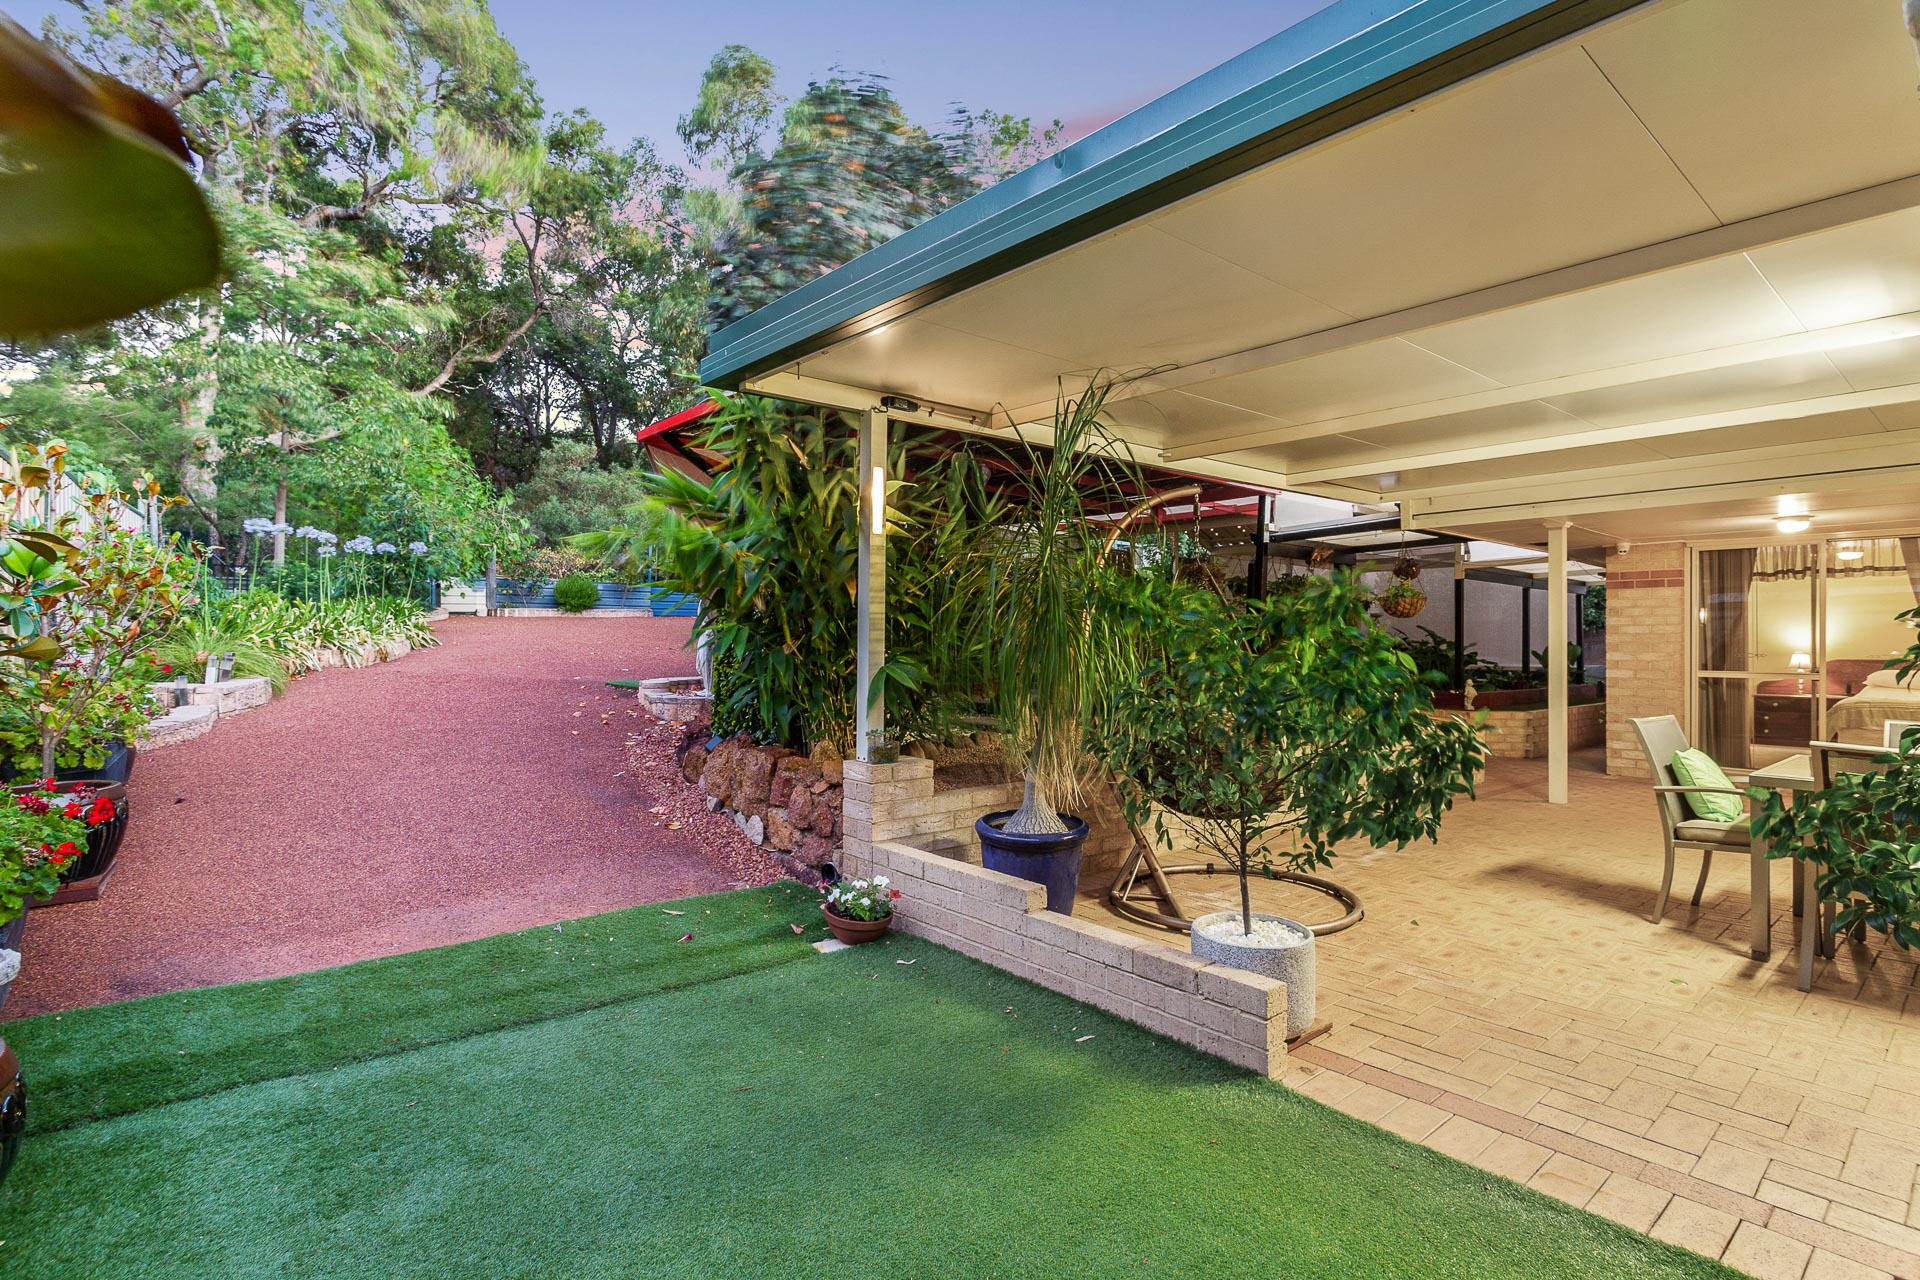 Property for sale in GOOSEBERRY HILL